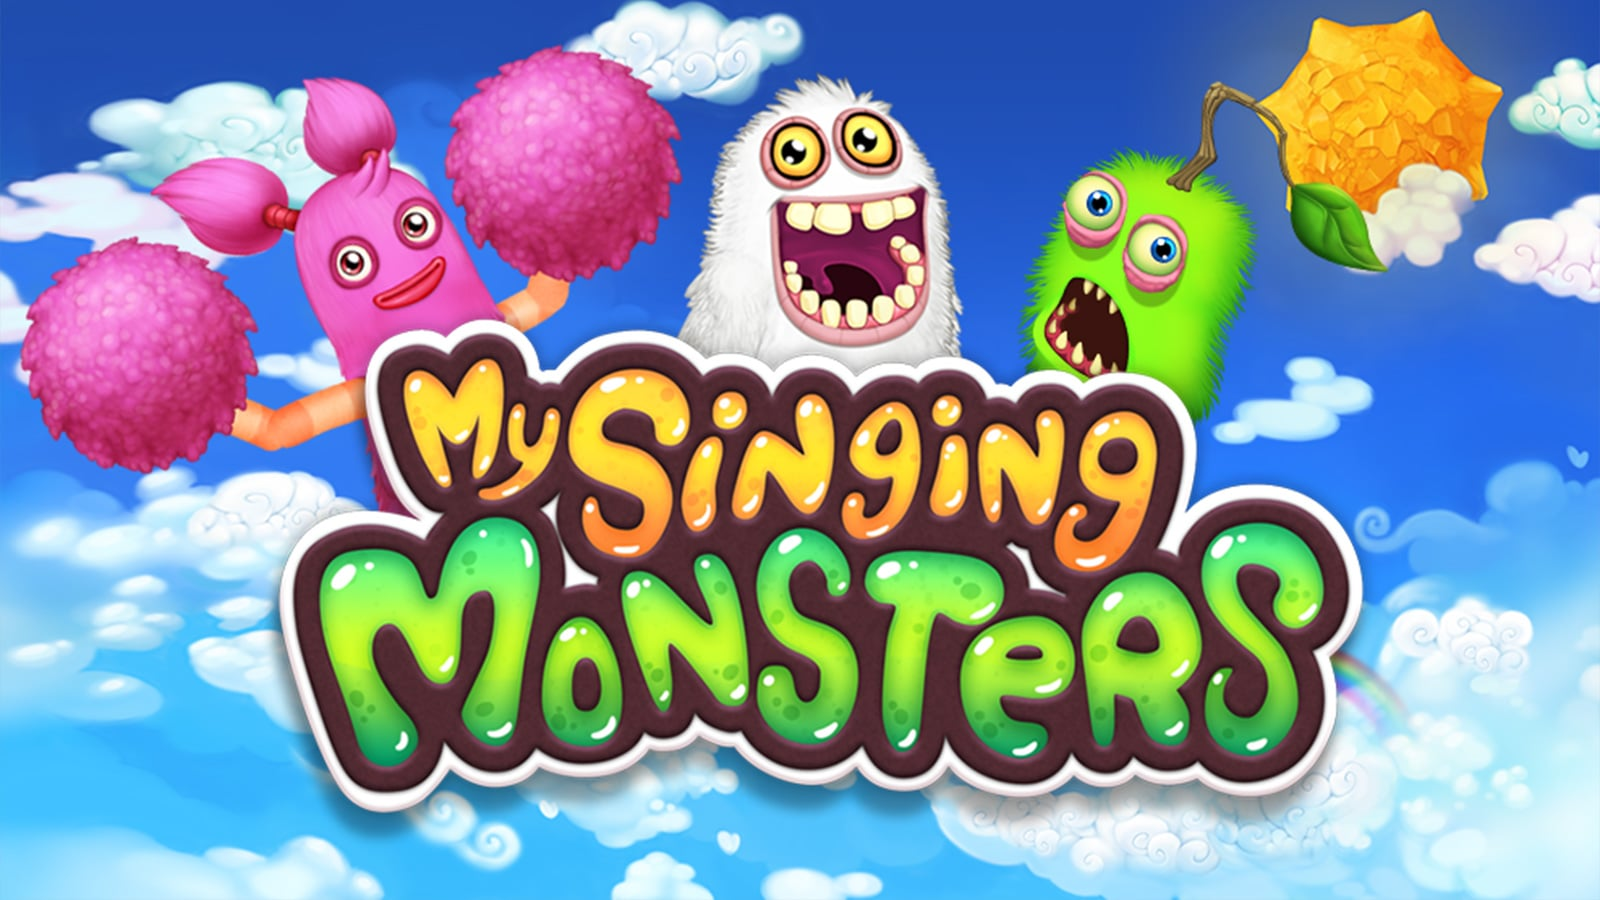 My Singing Monsters Wallpaper - My Singing Monsters , HD Wallpaper & Backgrounds